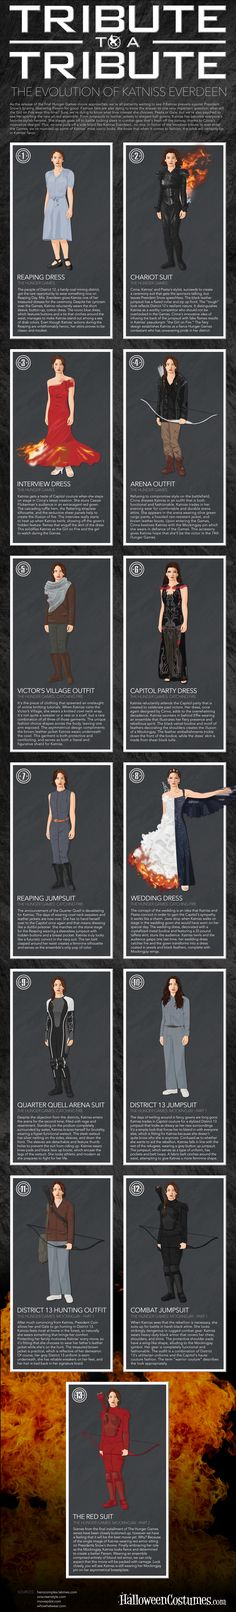 Tribute to a Tribute: The Evolution of Katniss Everdeen [Infographic] #HungerGames #Mockingjay #JenniferLawrence